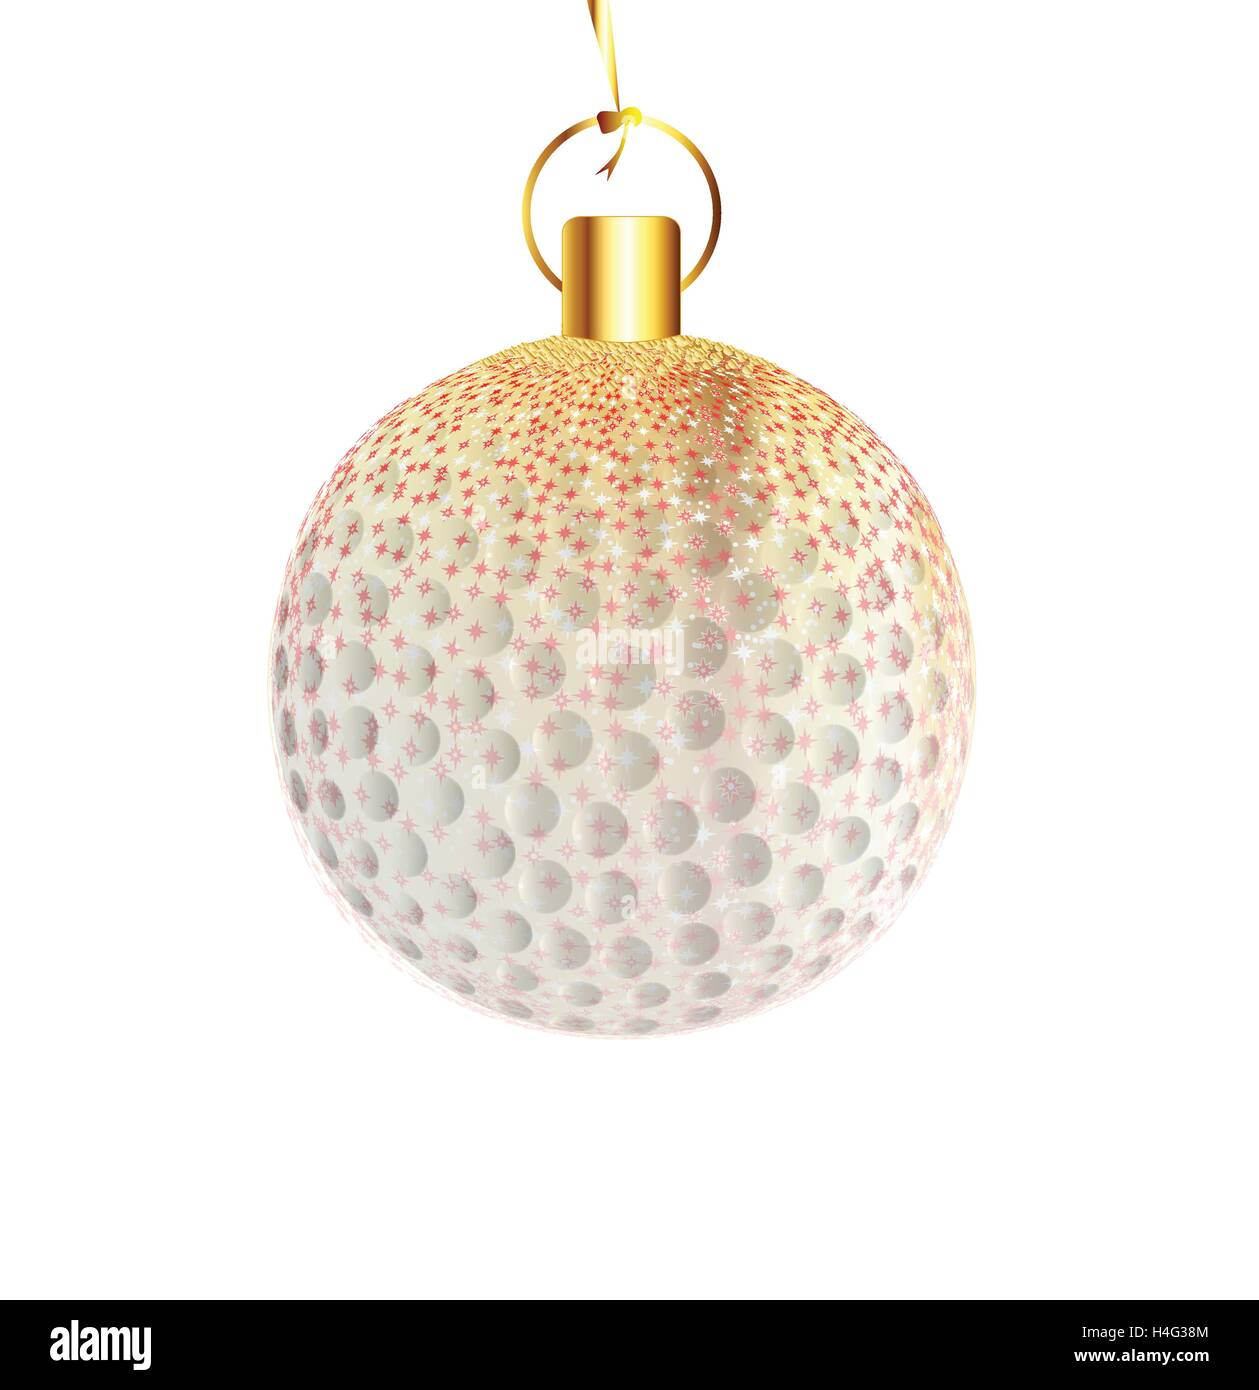 A gold and spakly Christmas tree golfball decoration - Stock Image